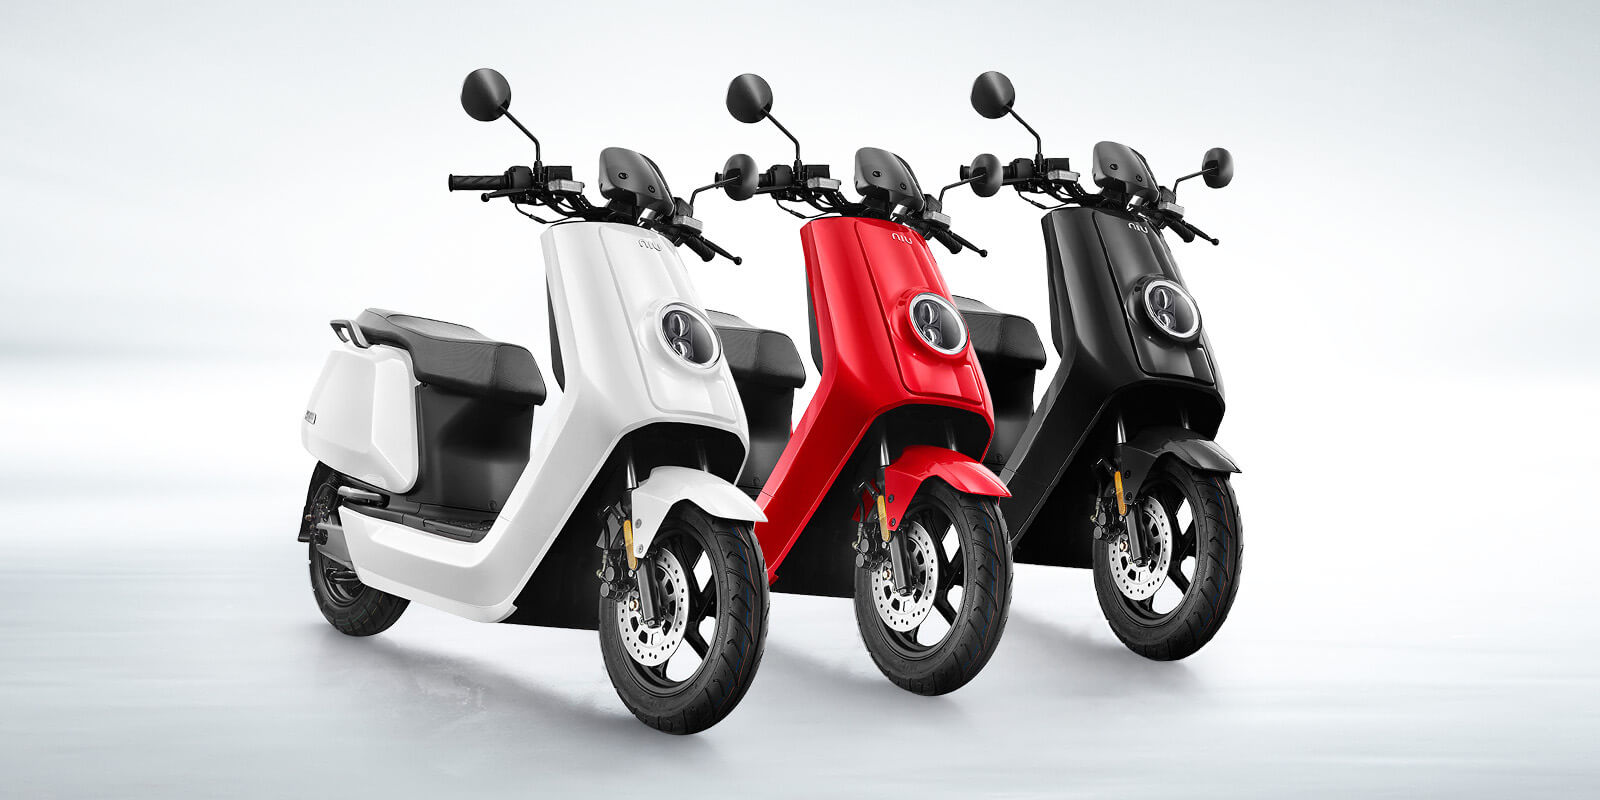 China S Largest Electric Scooter Maker Niu Files For 150 Million Ipo In The Us